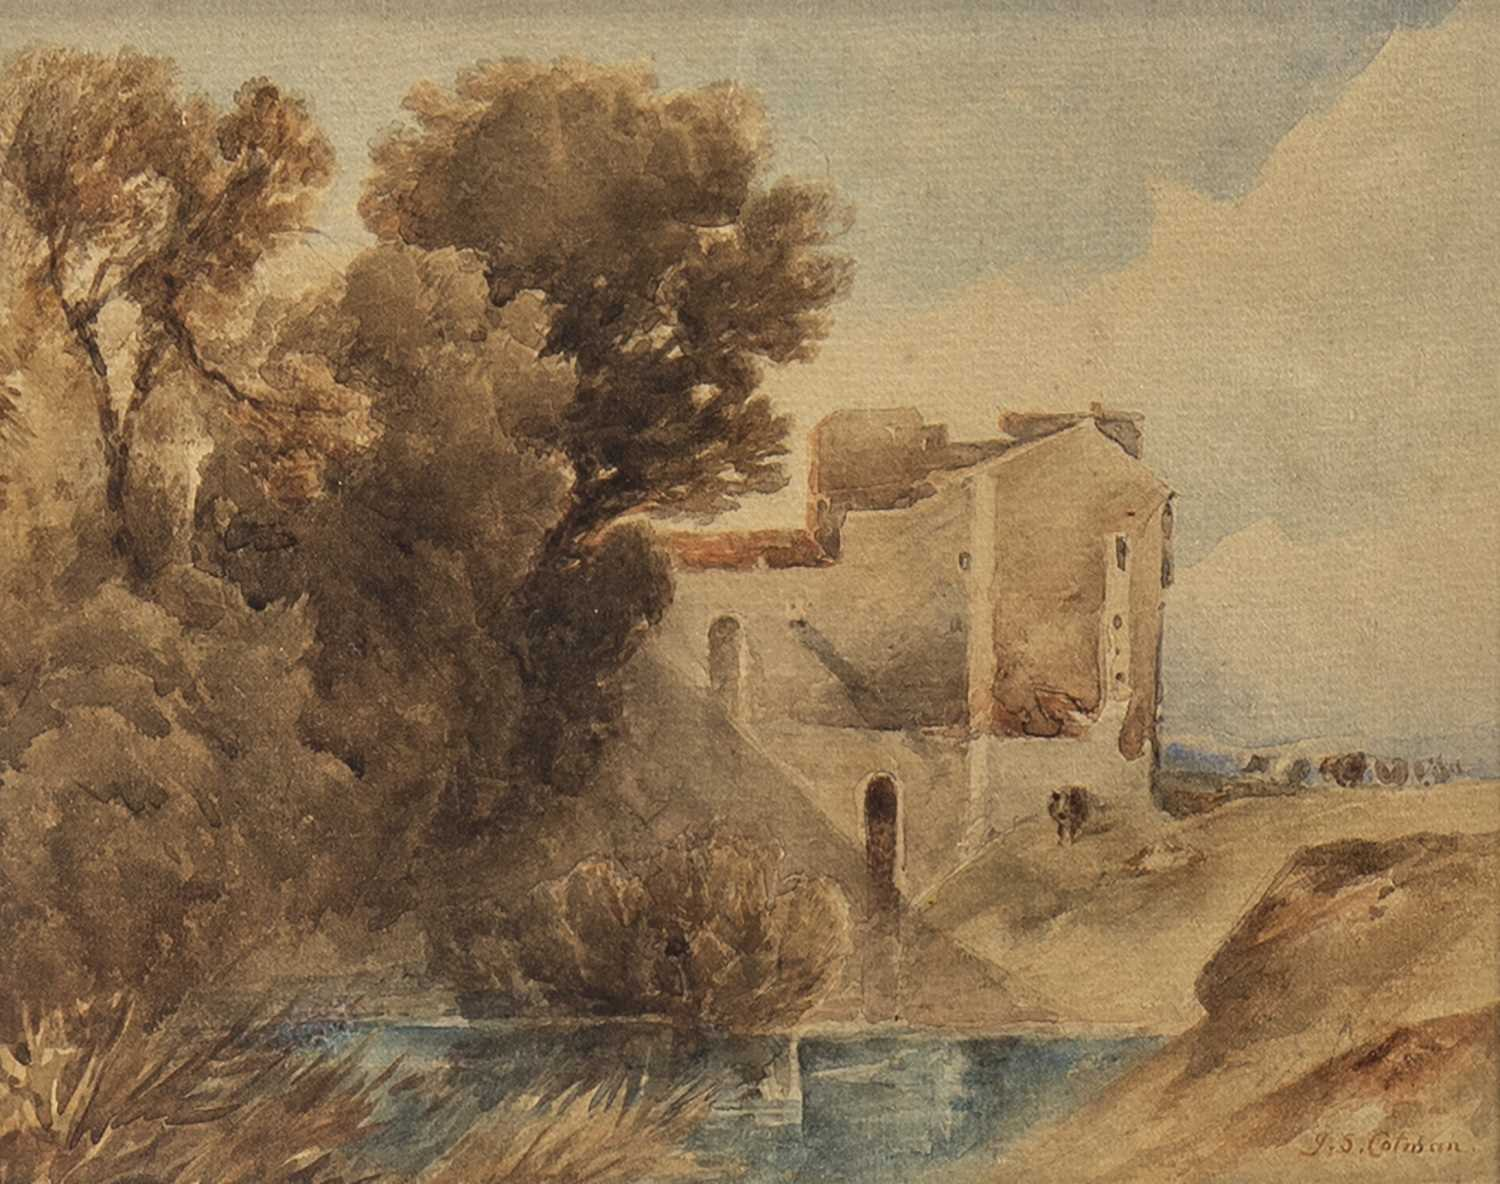 Lot 401-CASTLE BY A RIVER, A WATERCOLOUR BY JOHN SELL COTMAN